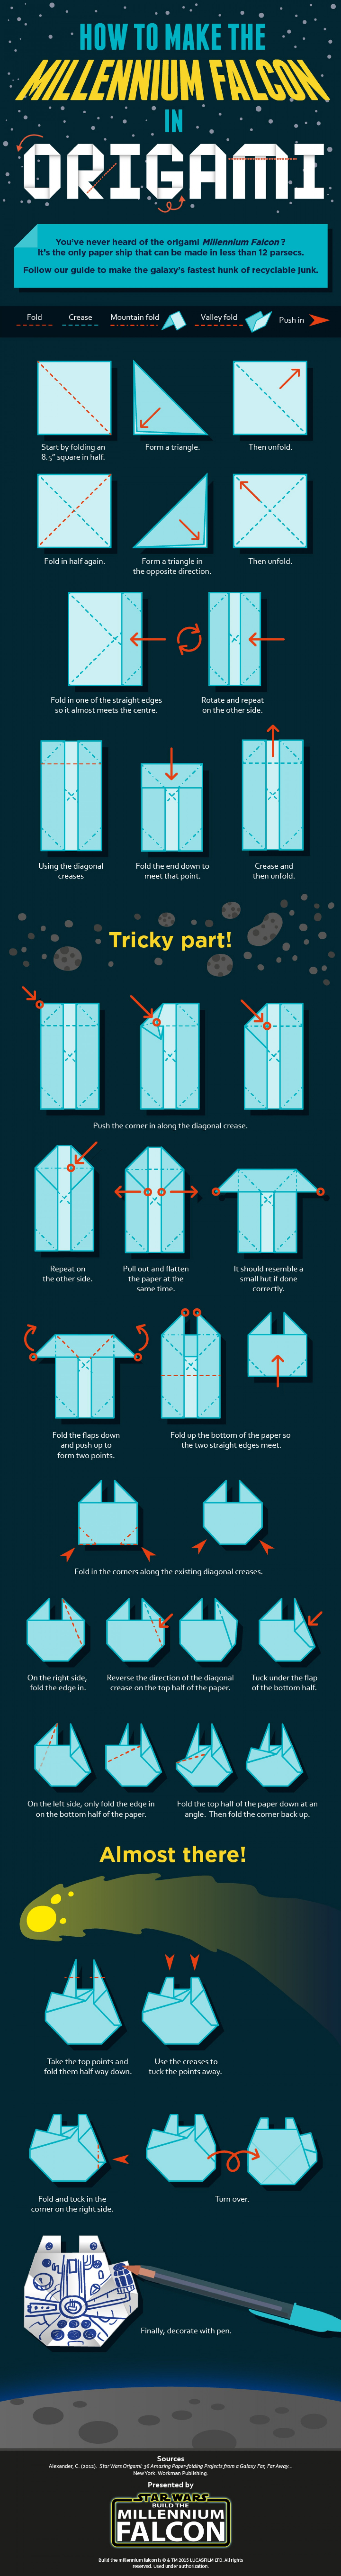 How to make the millennium falcon in origami infographic crafts